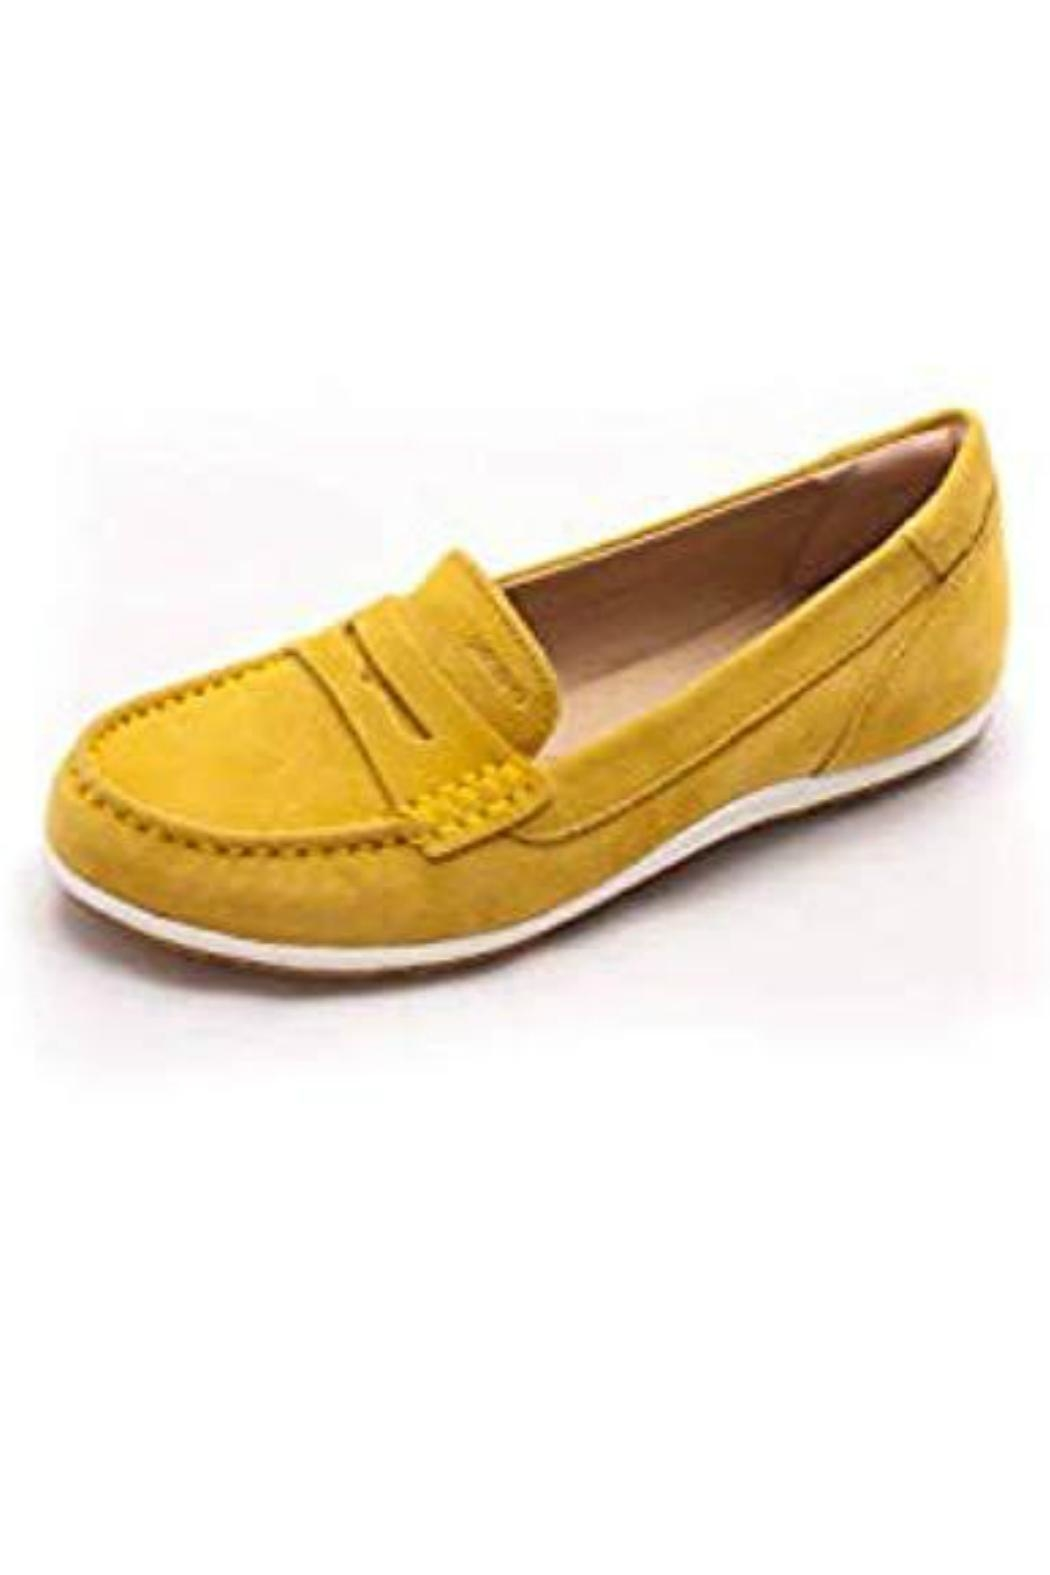 d30964b4593 Geox respira Vega Moc Slip-On from Canada by Blue Sky Fashions ...